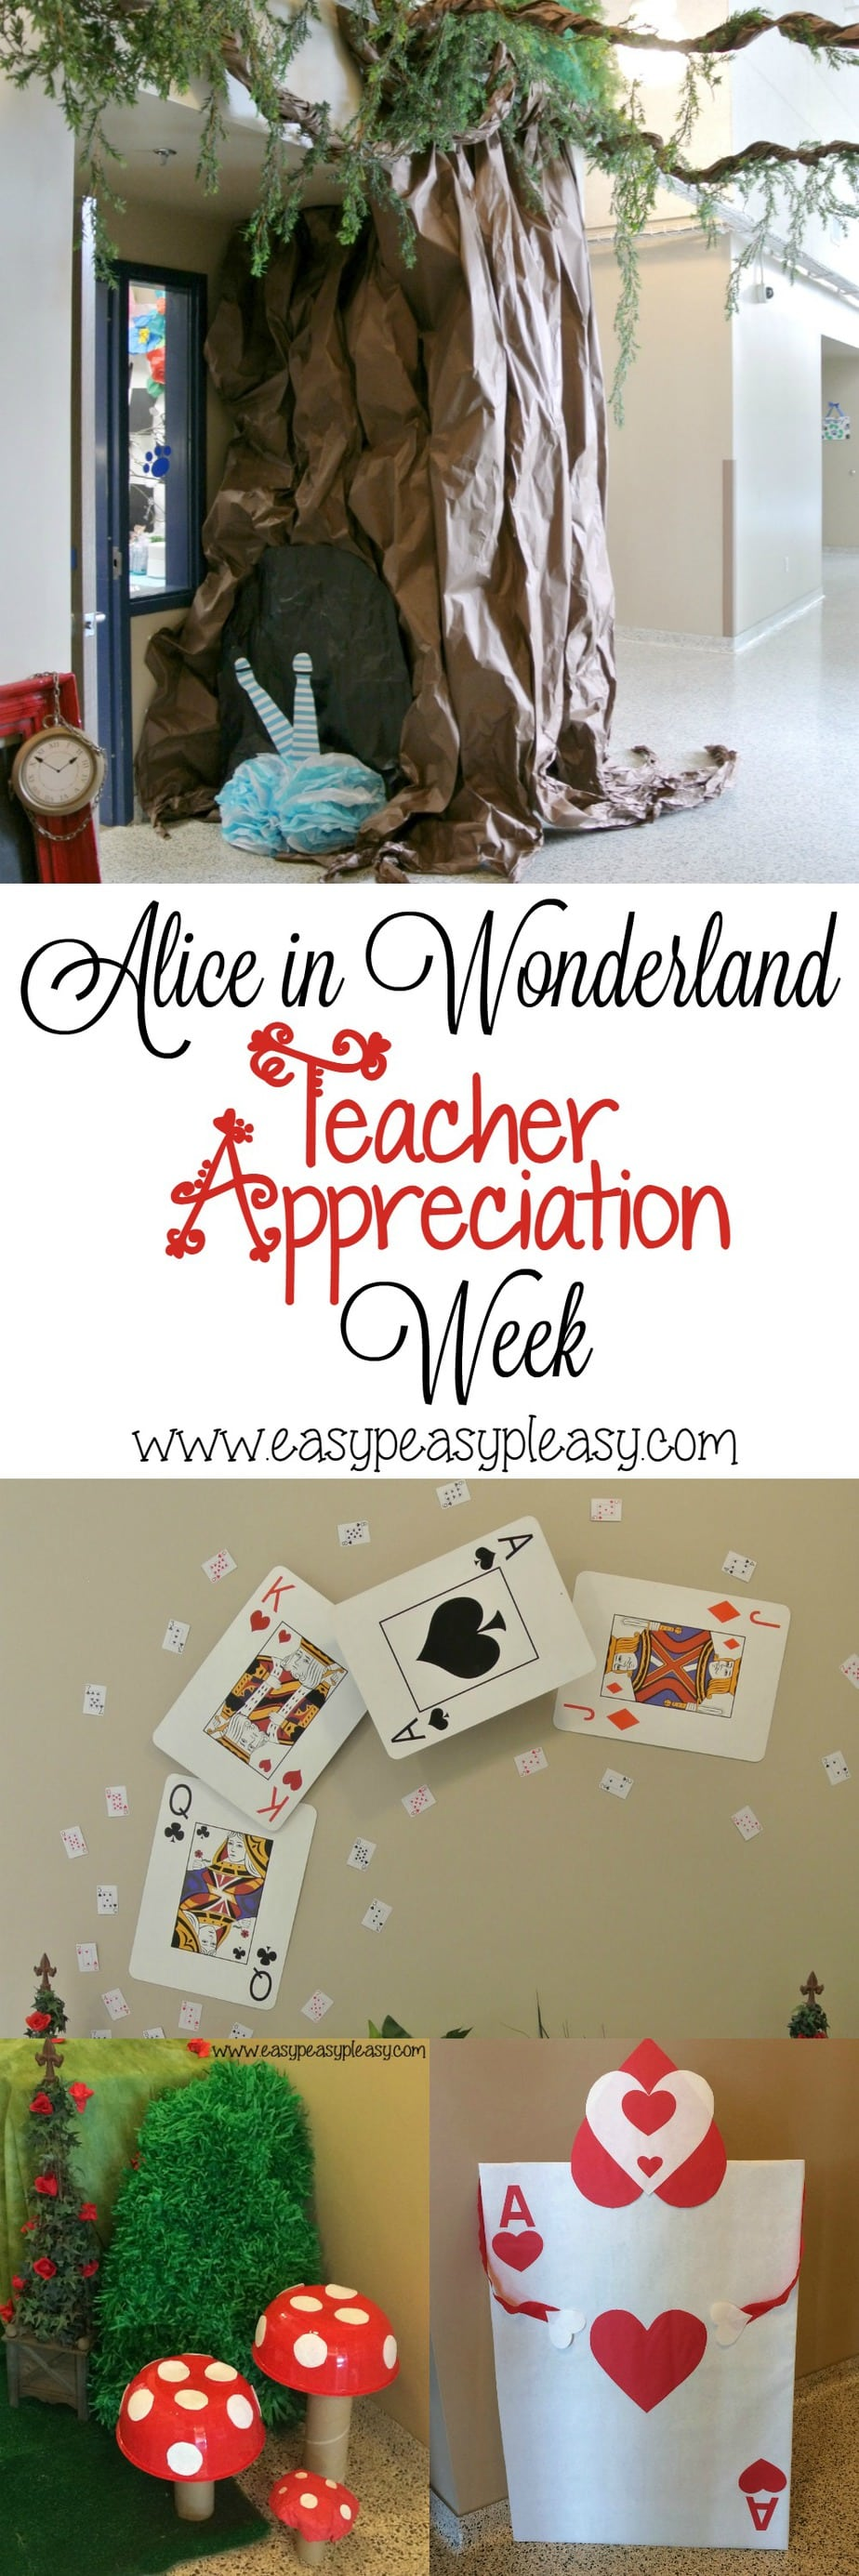 Alice in Wonderland Themed Teacher Appreciation week DIY ideas that would work for any party!